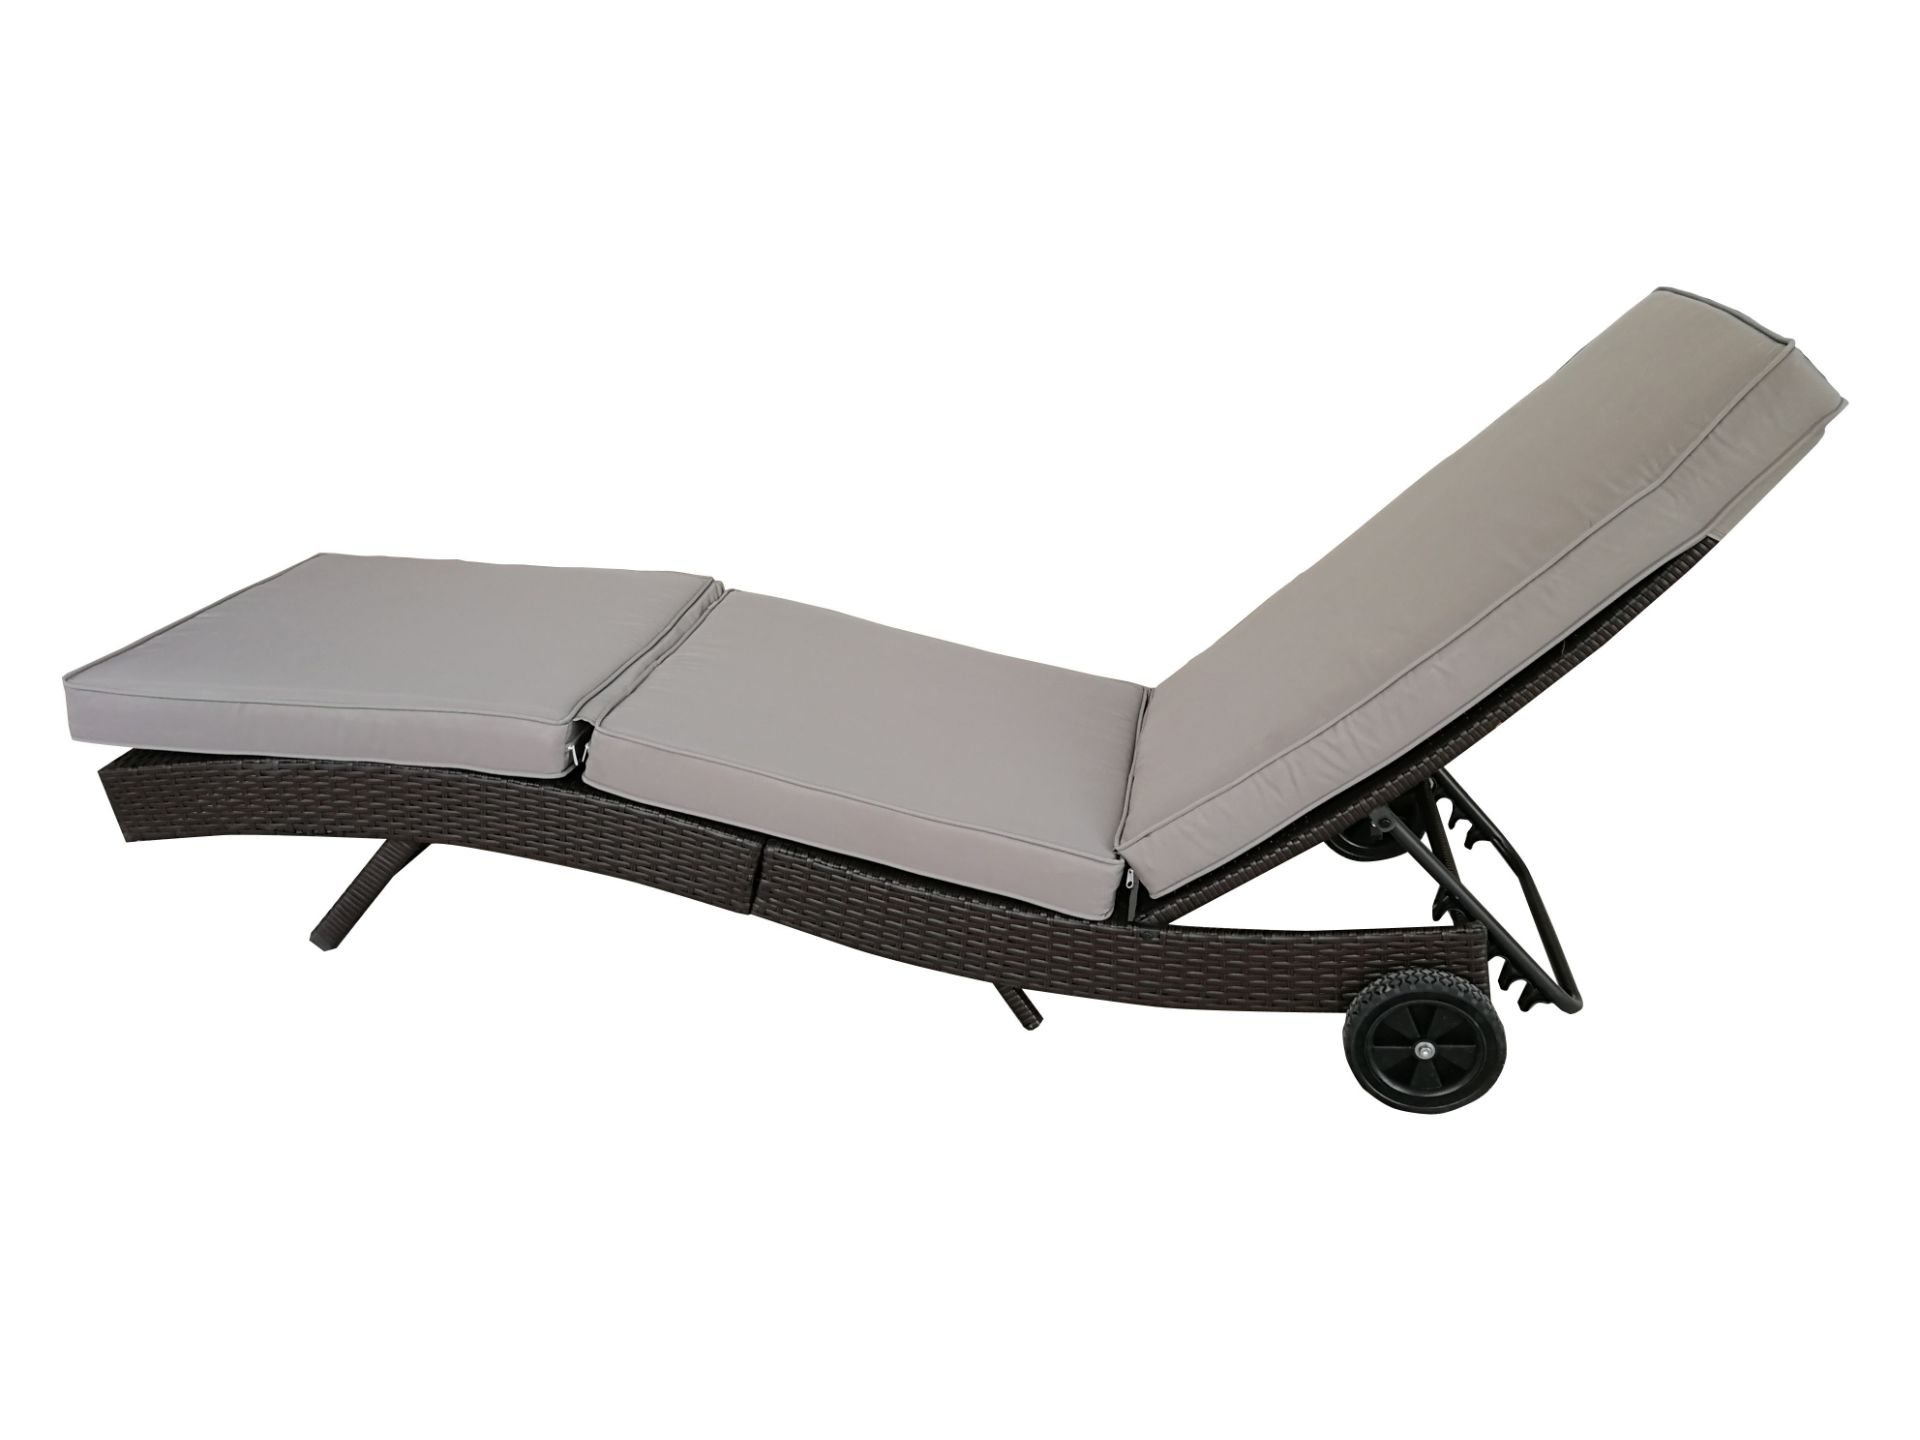 + VAT Brand New Chelsea Garden Company Dark Brown Rattan Sunbed - Steel Framed - Include Cushion - - Image 2 of 5